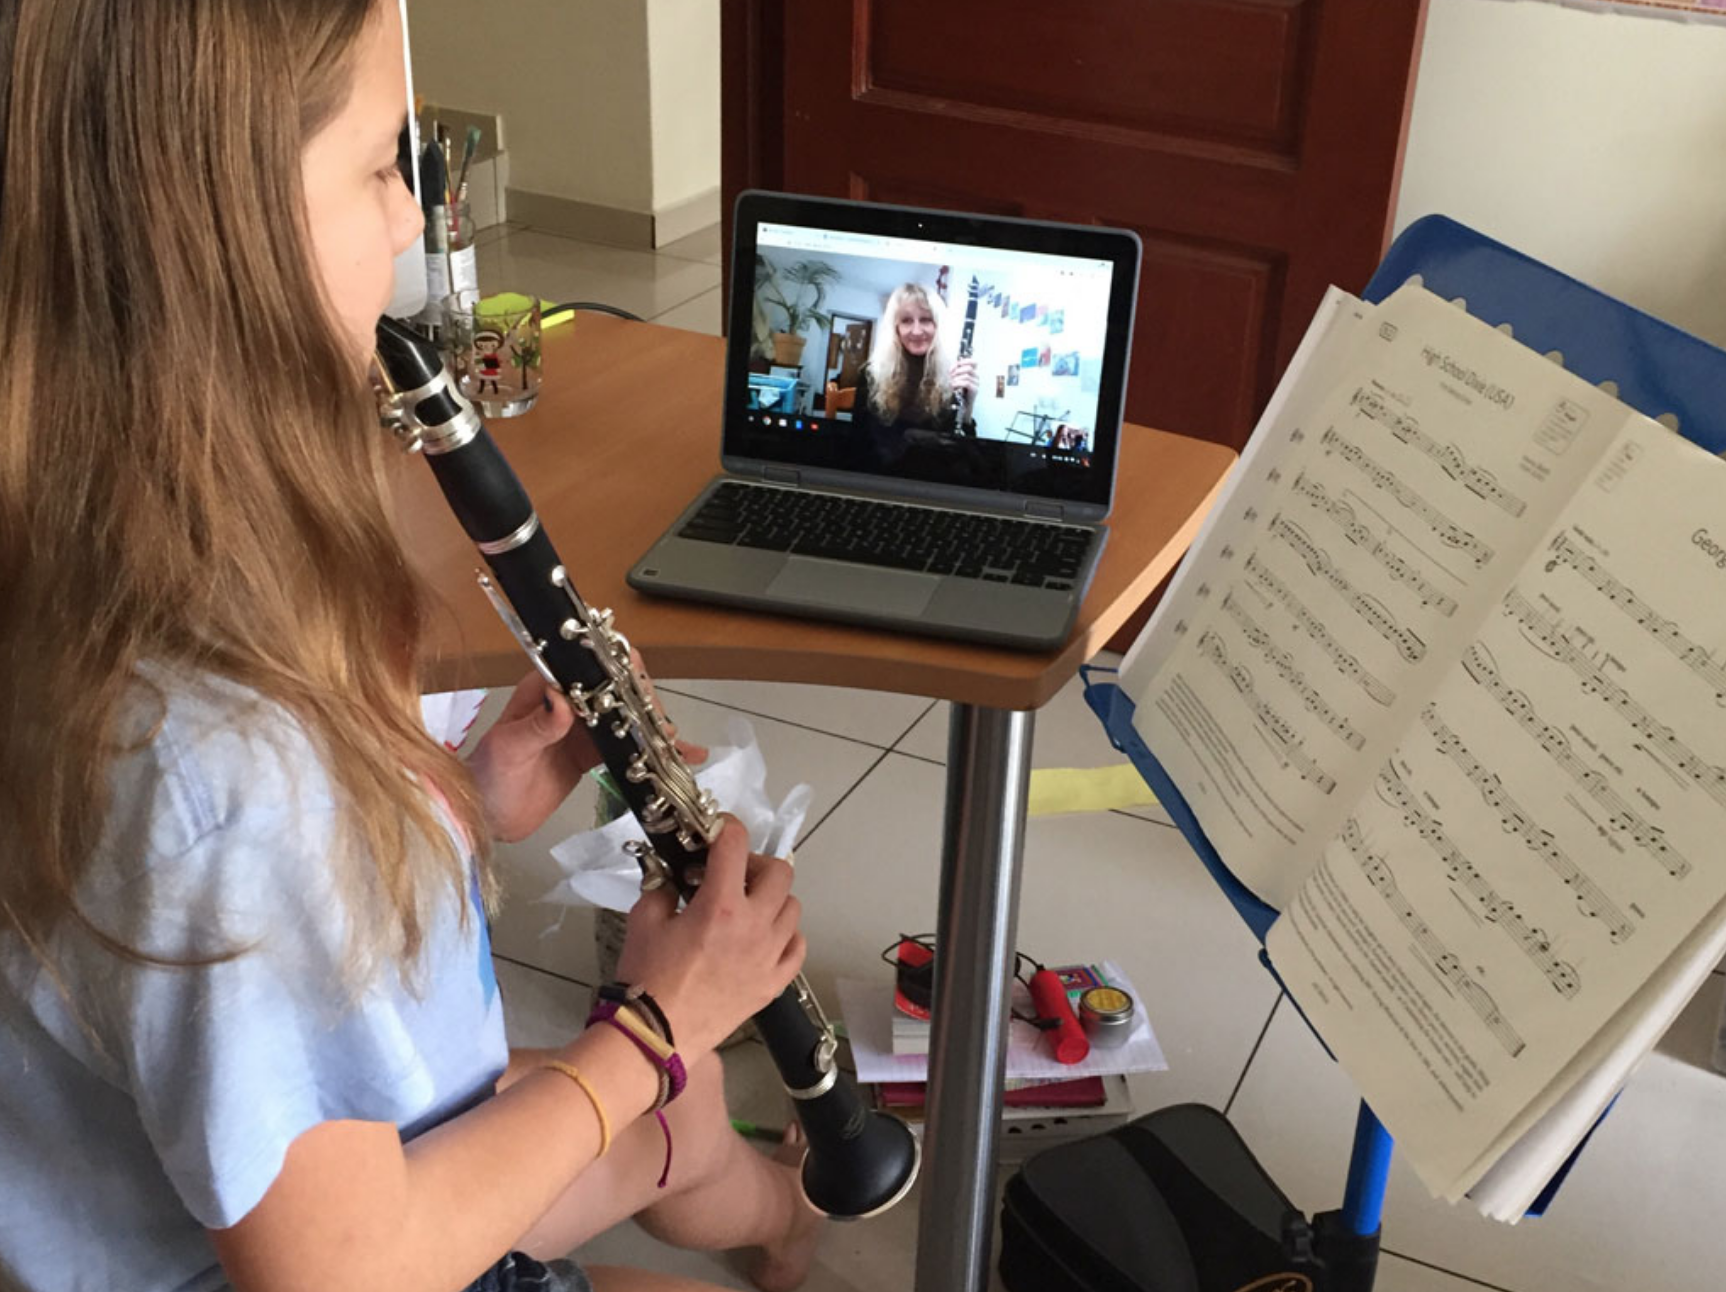 Clarinet, Saxophone, Flute, or Piano Lessons with a Juilliard Music Educator | For Homeschooling & Distance Education 3